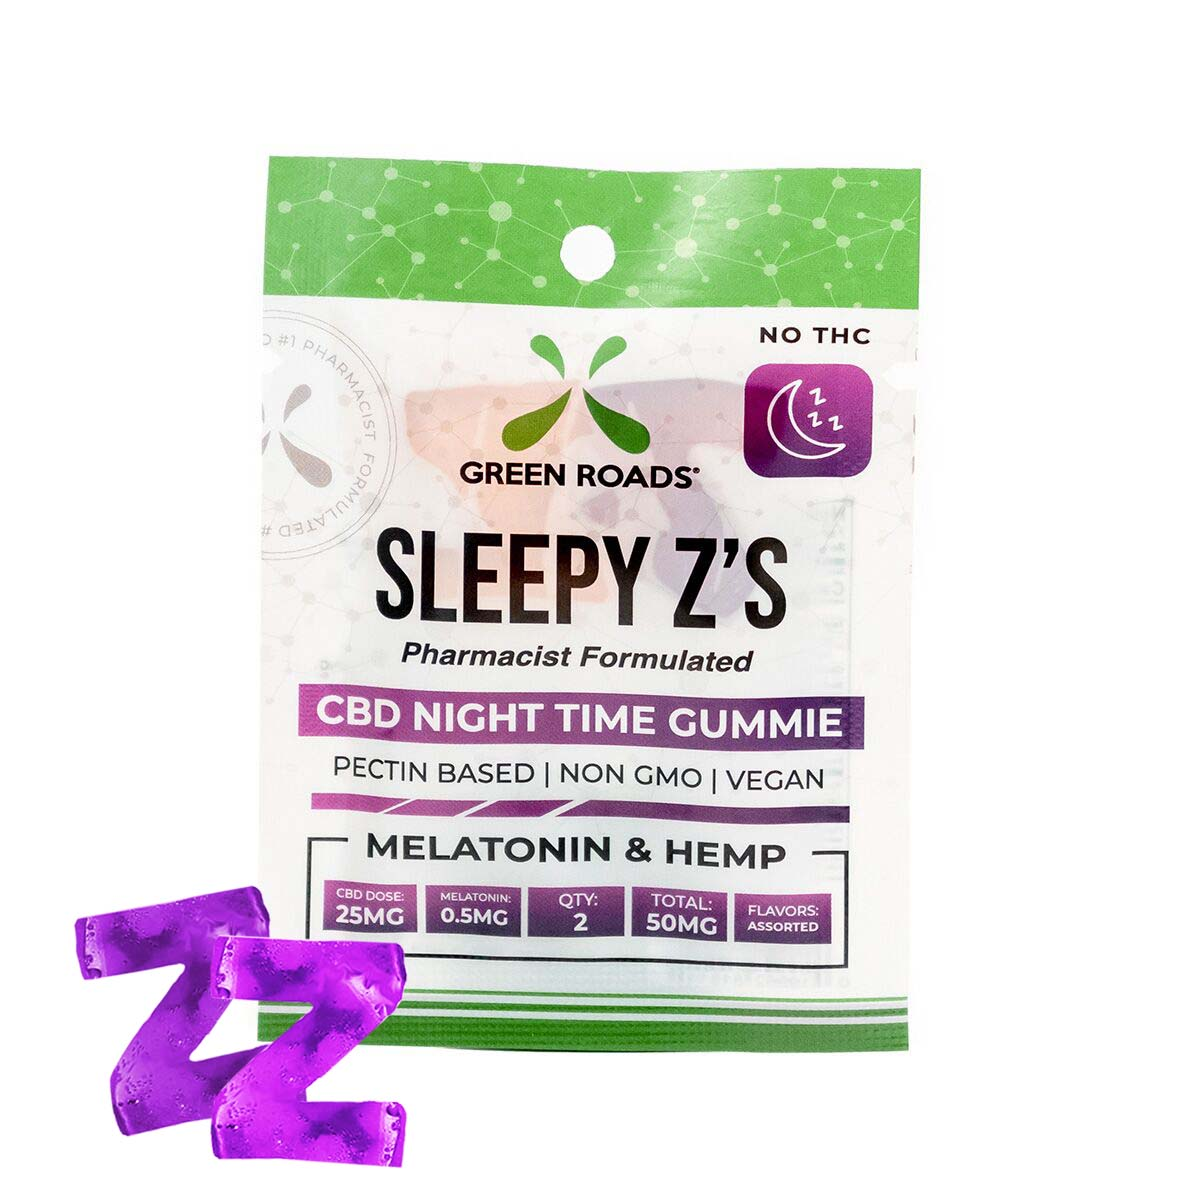 50 MG Sleepy Z's (2 Doses) $9.50